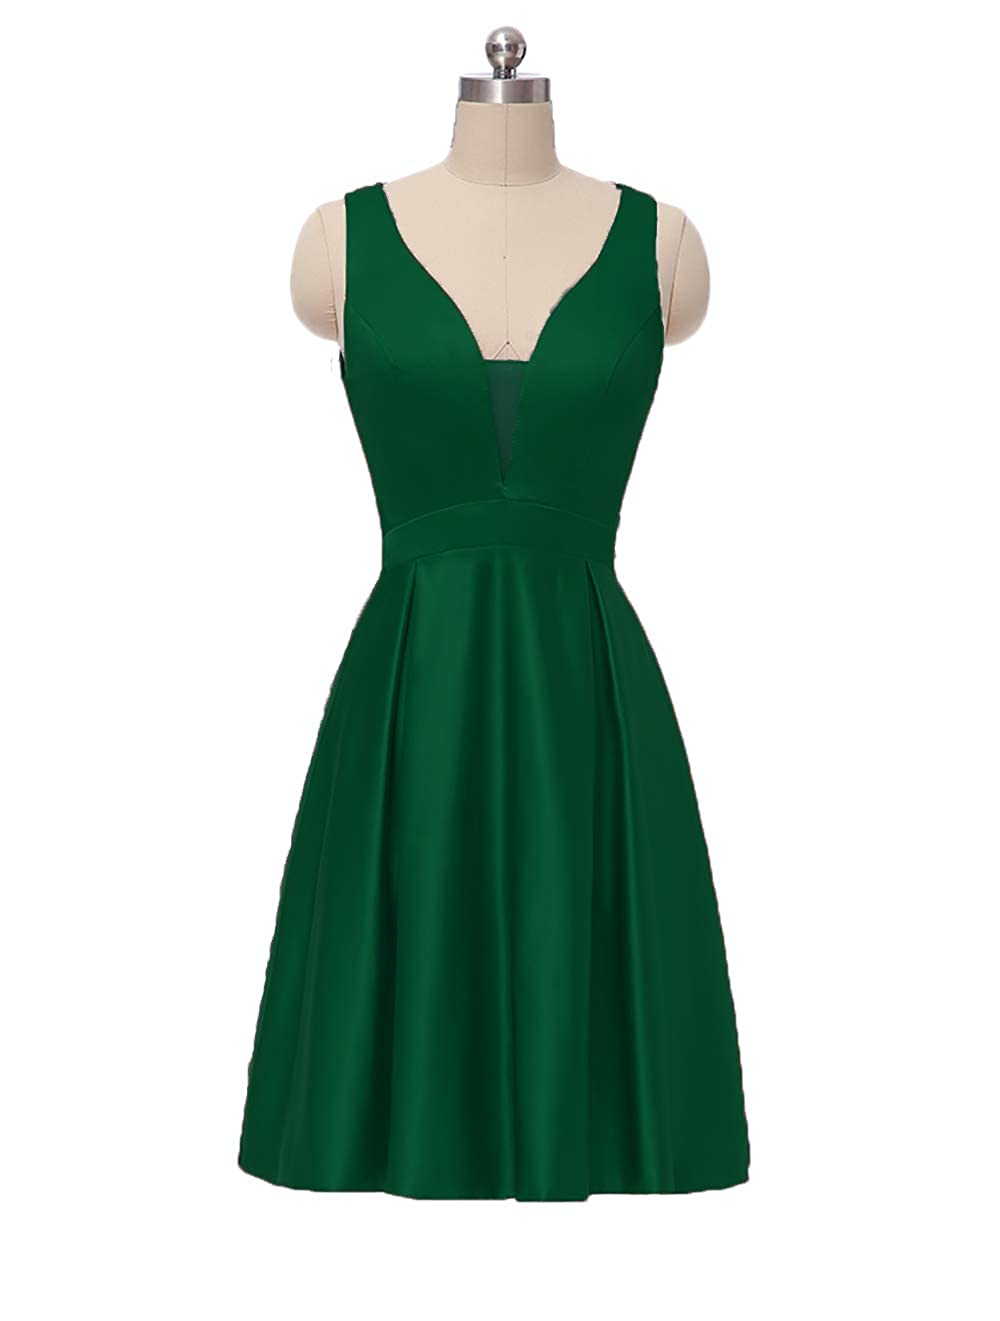 Zemerald Green JiusTan Sexy V Neck Prom Dresses Spaghetti Strap Satin Long Evening Dresses Party Gowns for Women with Pockets 2019